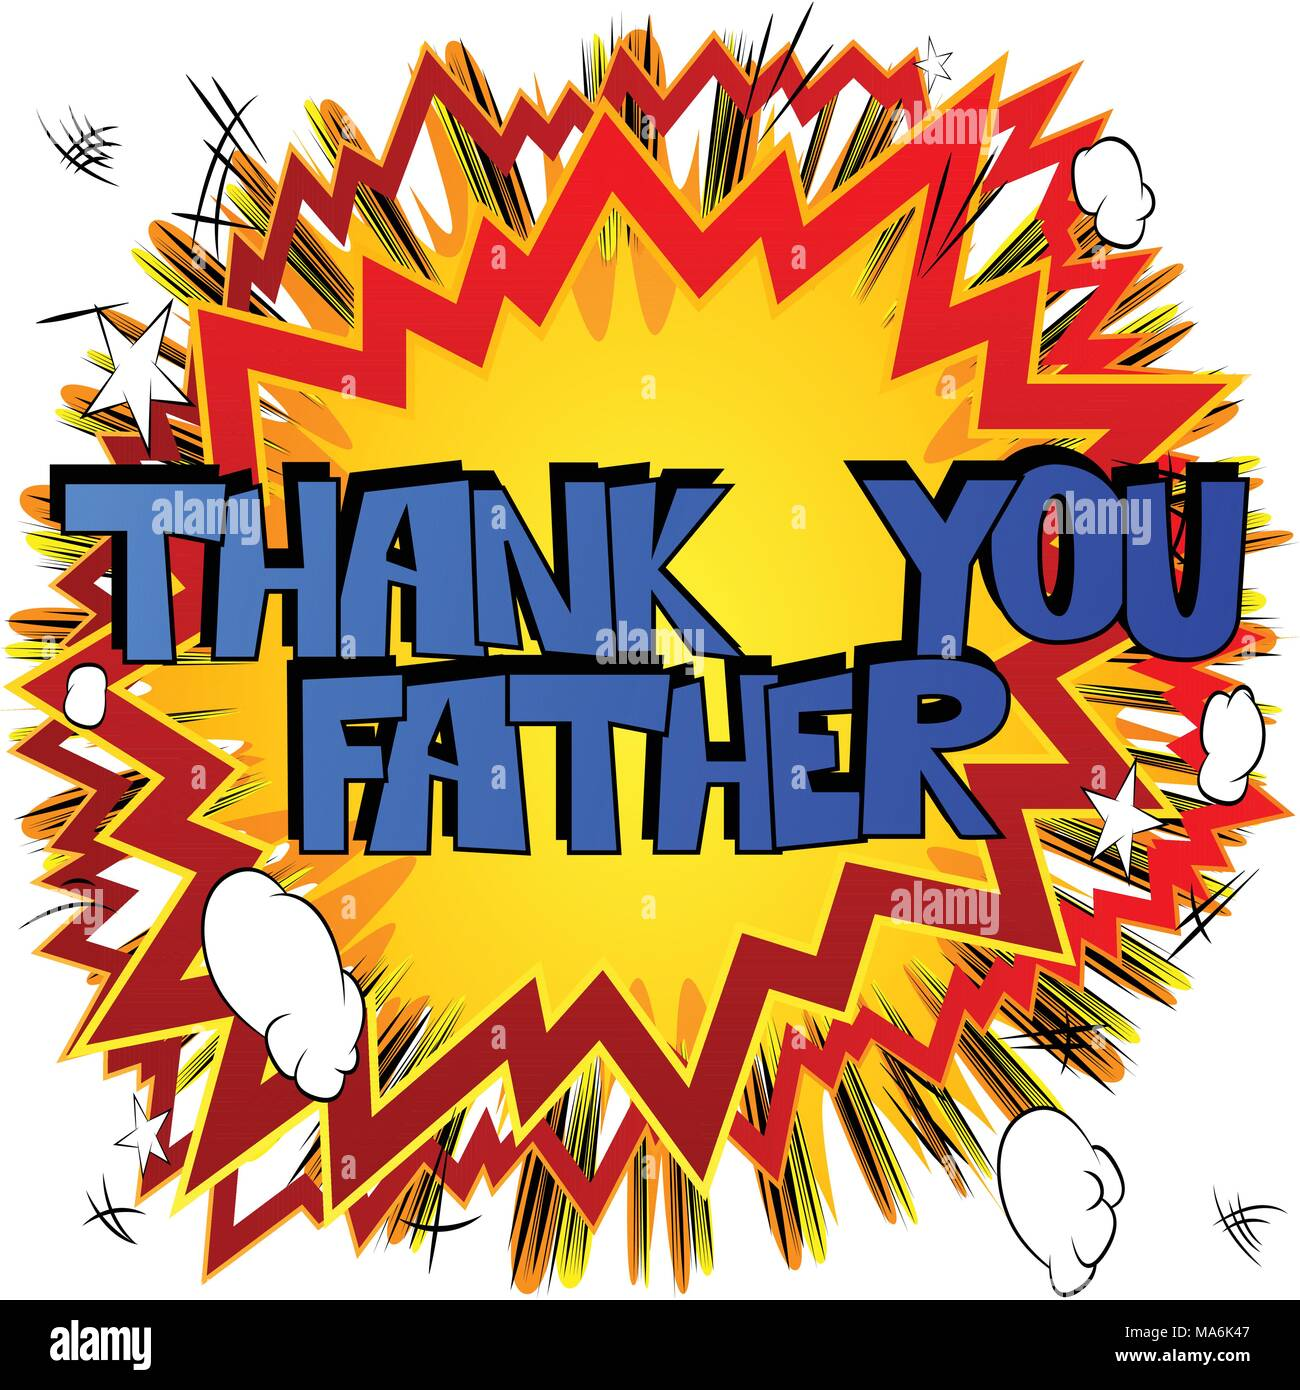 Vector illustrated comic book banner greeting card for fathers day vector illustrated comic book banner greeting card for fathers day with thank you father text m4hsunfo